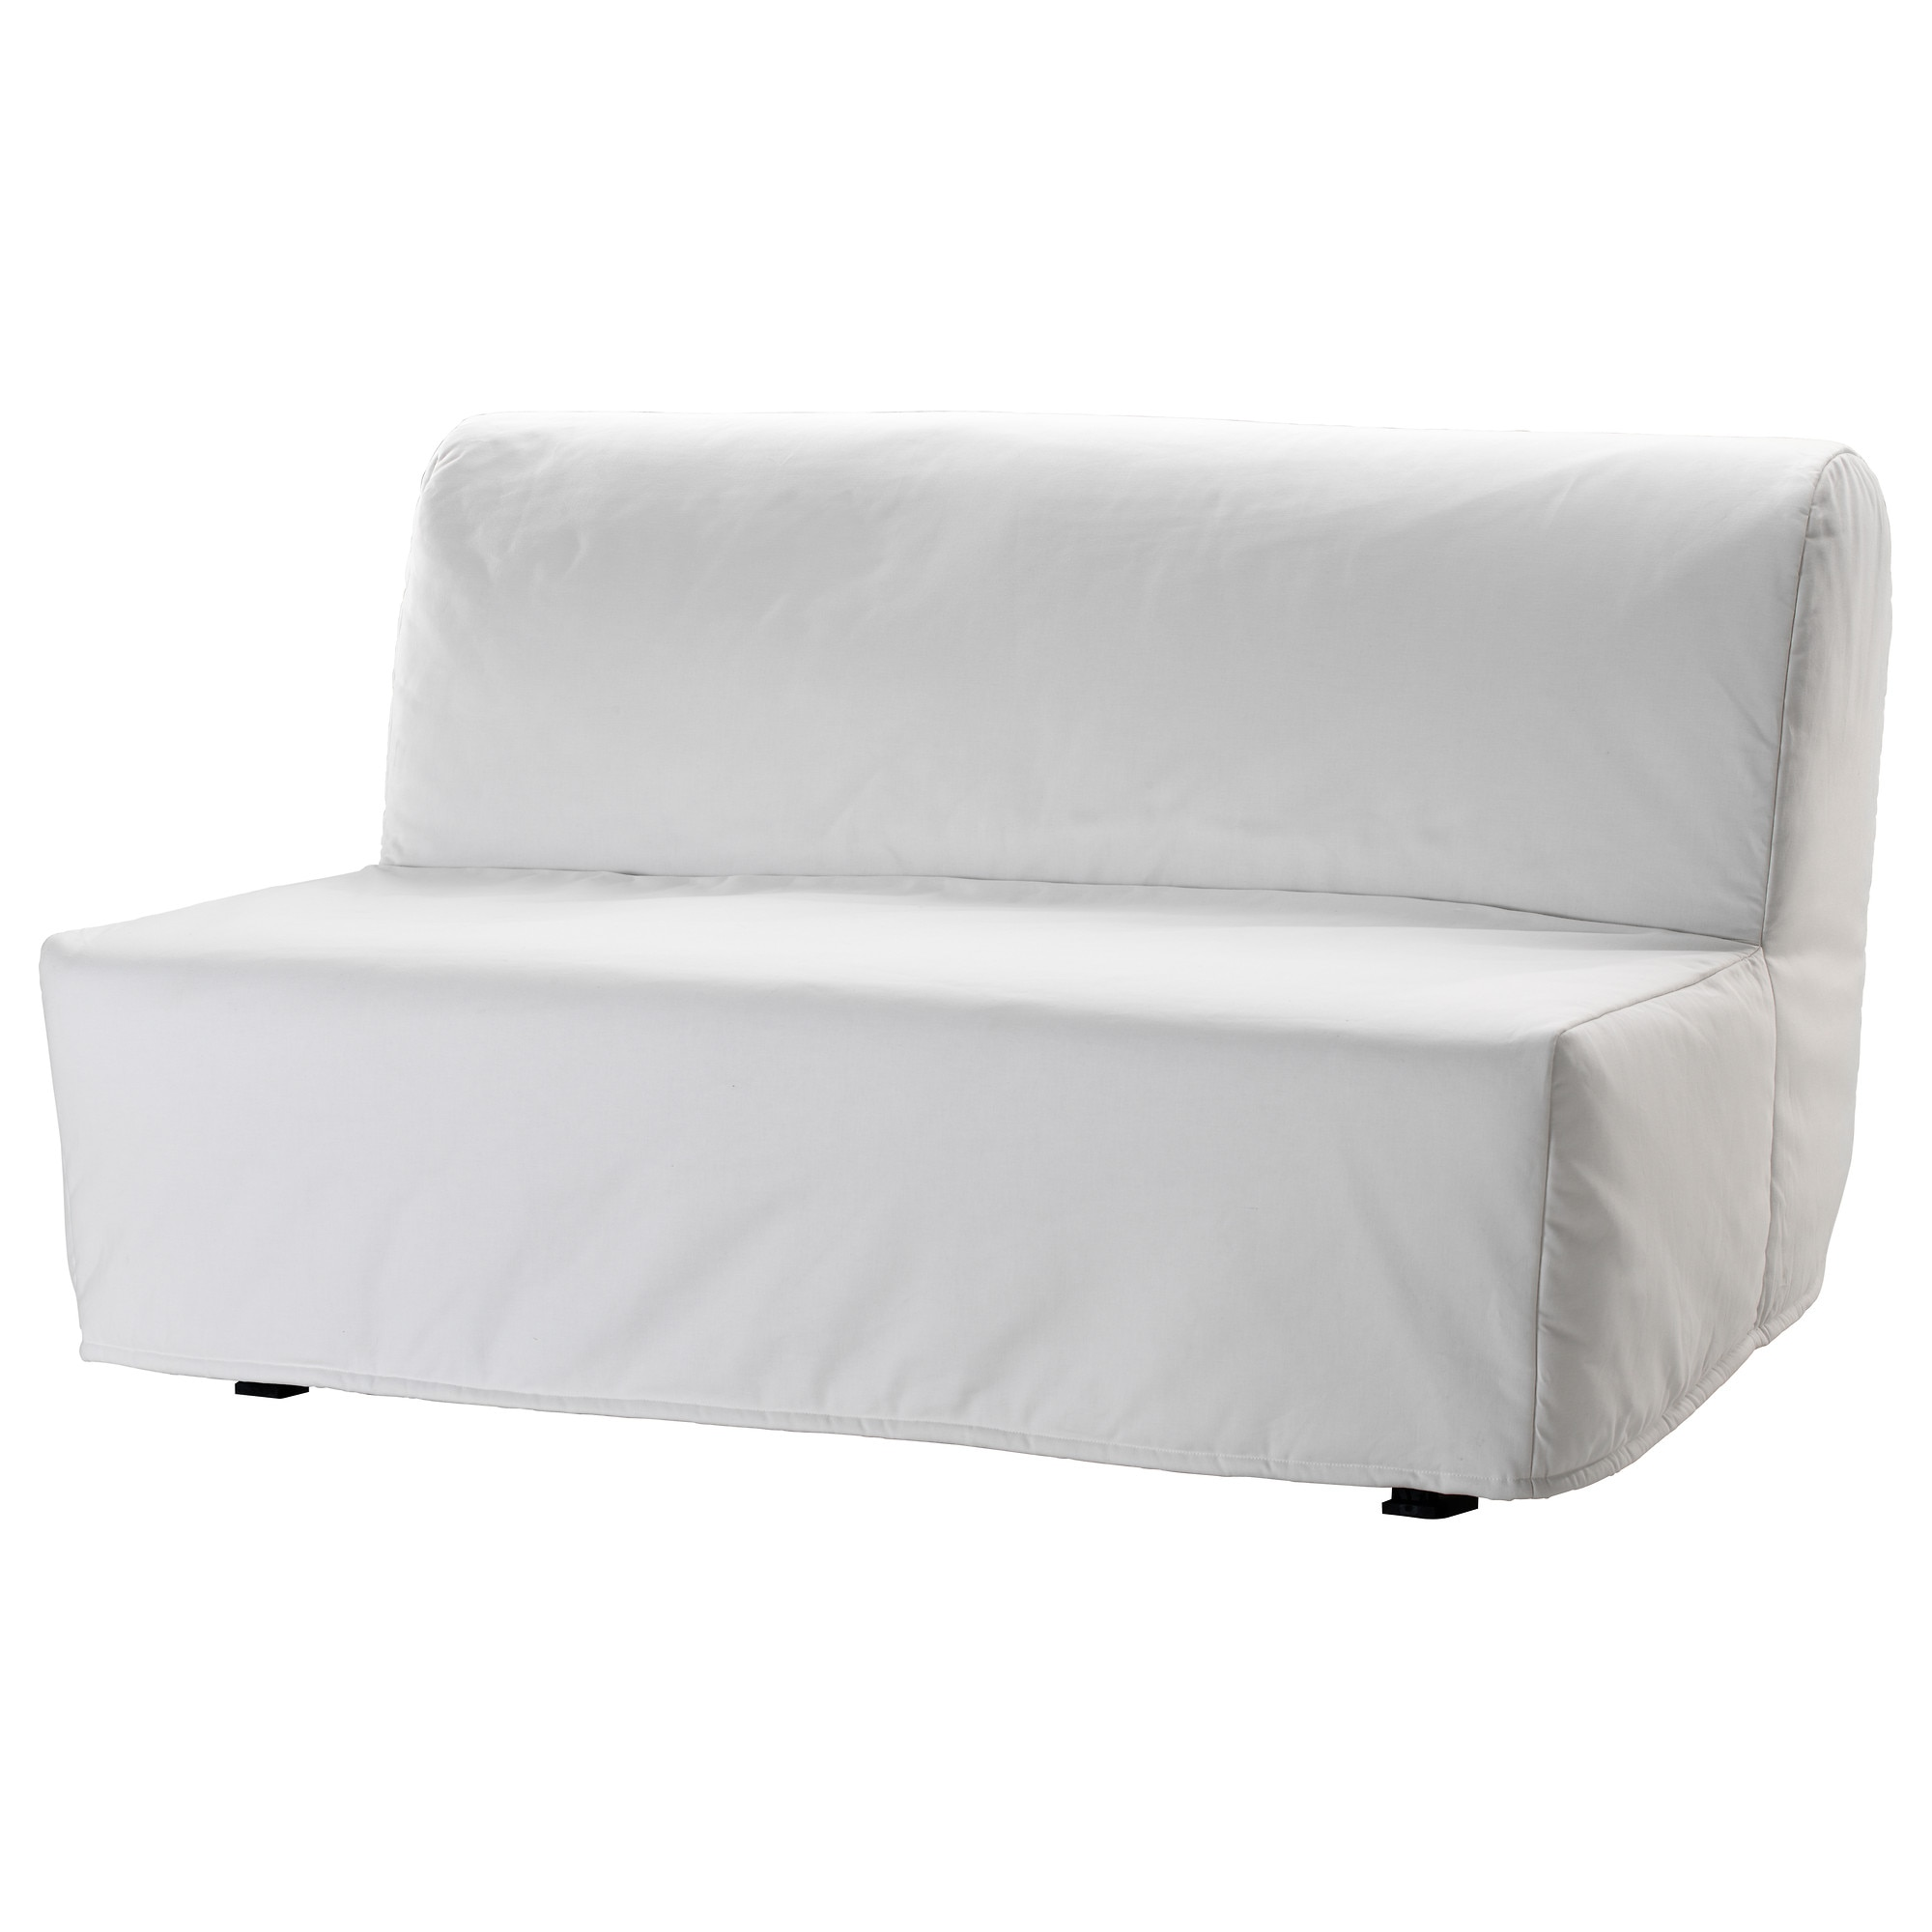 LYCKSELE L–V…S Sleeper sofa Ebbarp black white IKEA